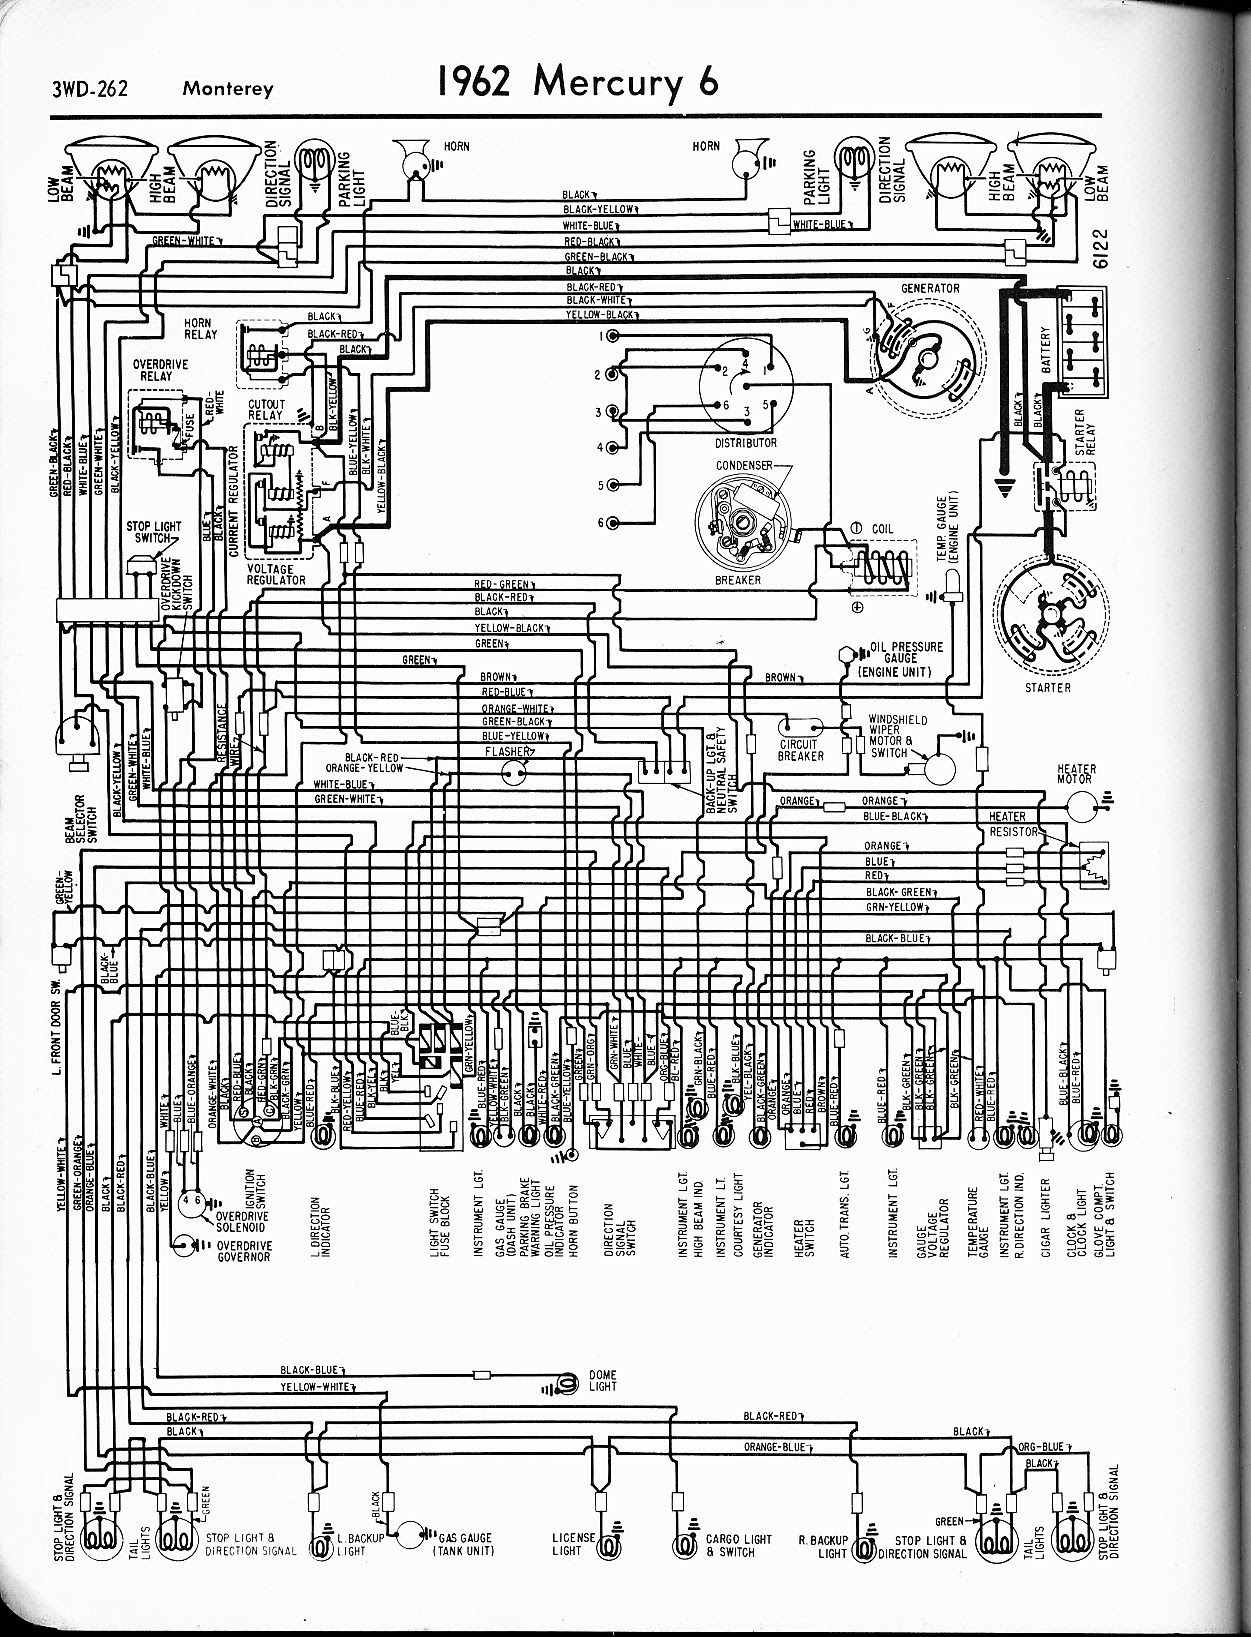 Diagram 1967 Mercury Monterey Wiring Diagram Full Version Hd Quality Wiring Diagram Roguediagram Gevim Fr